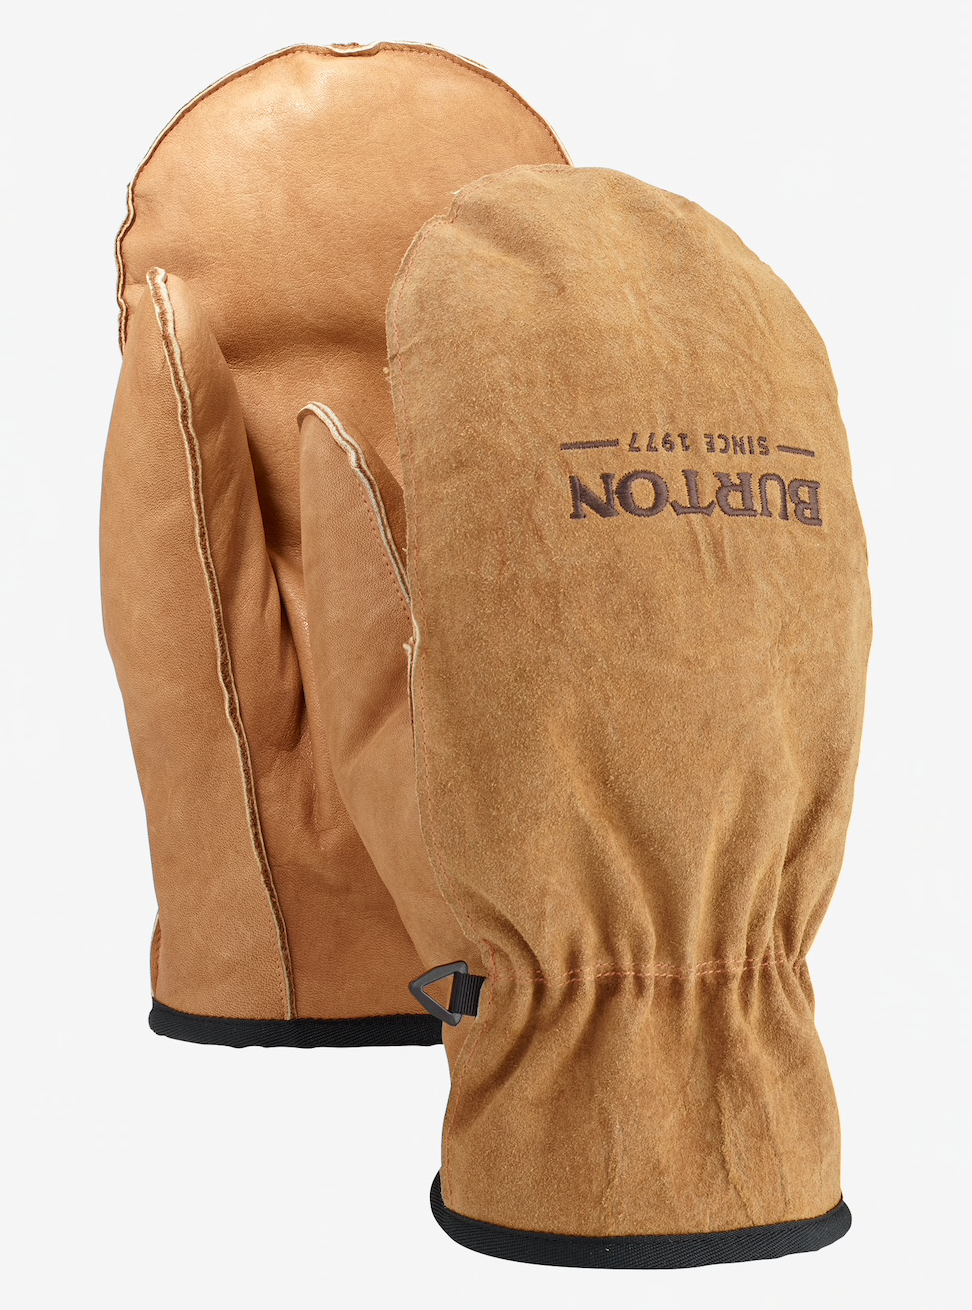 2019 Work Horse Leather Mitten - Raw Hide